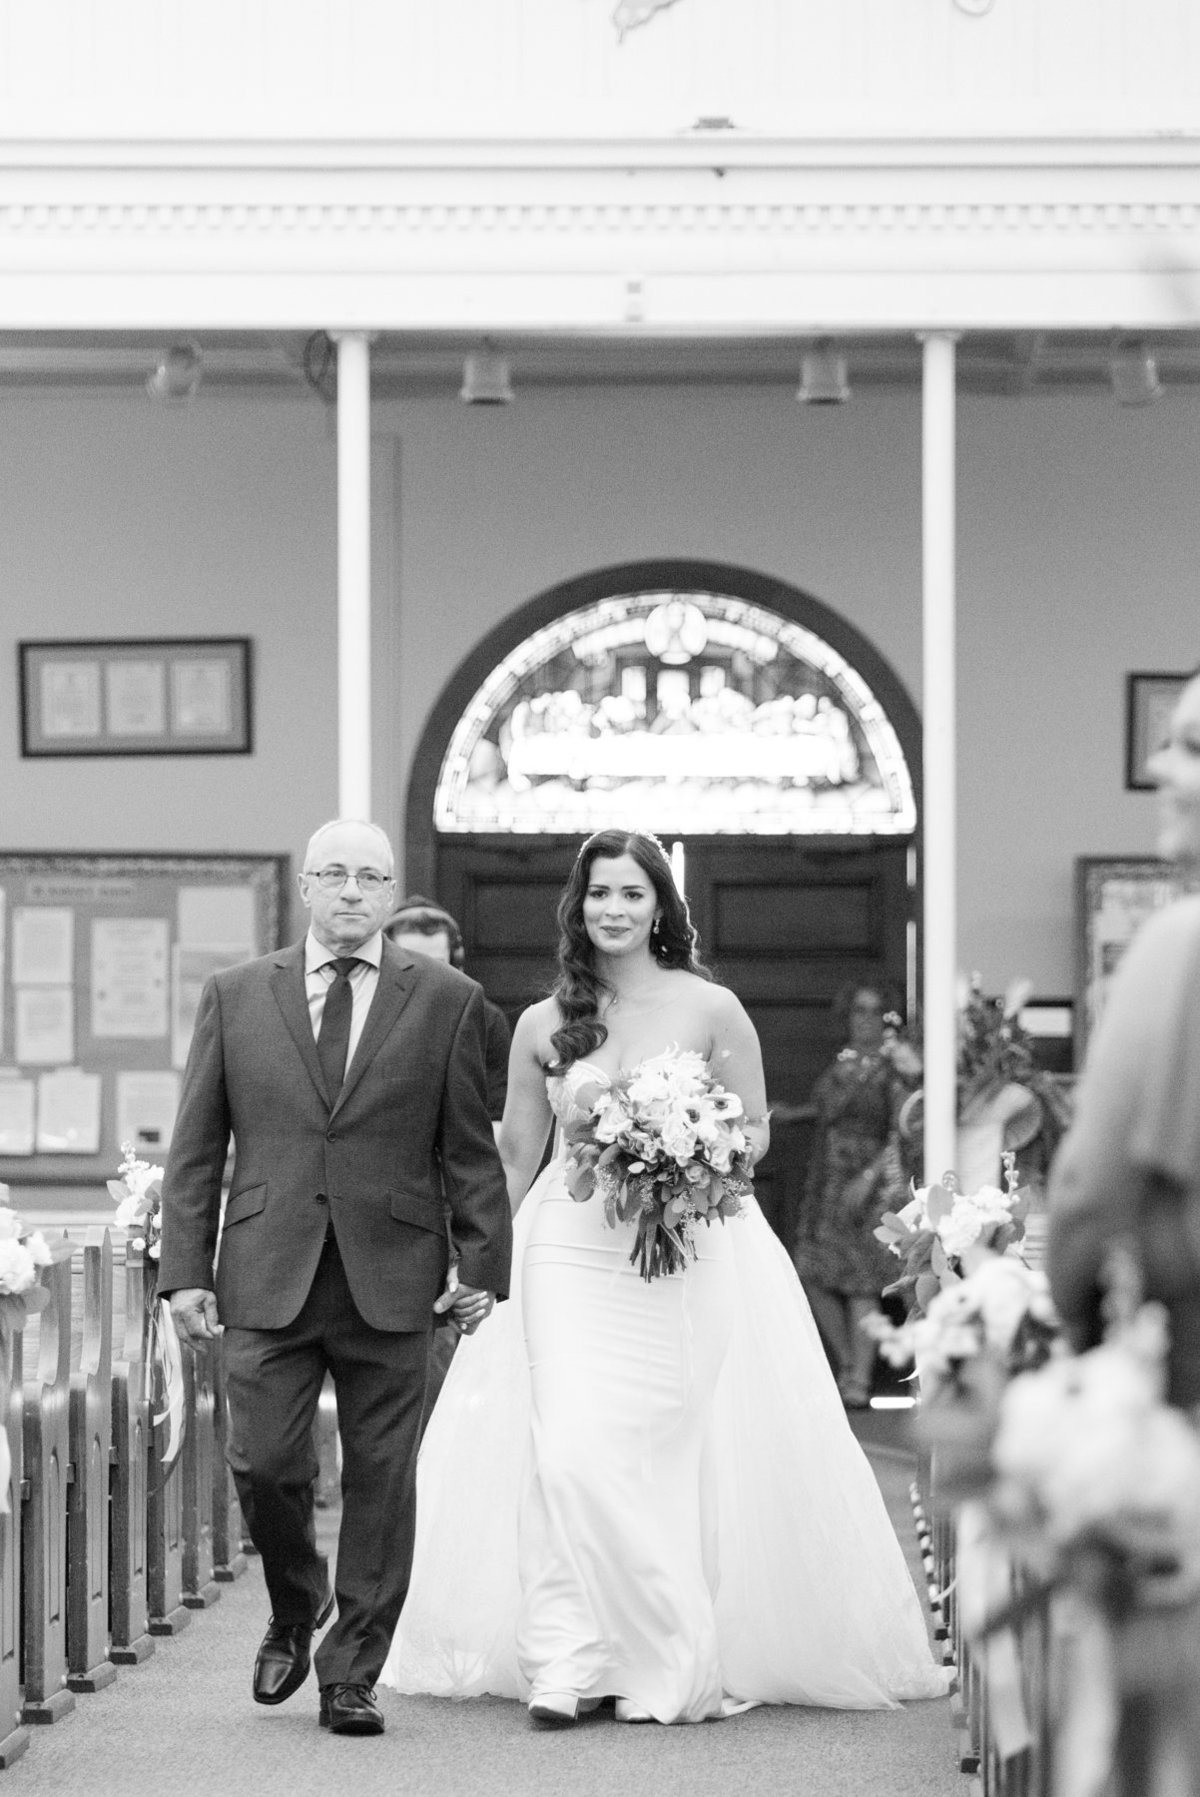 Bride walking down the aisle of St. Andrews Church in Thundr Bay